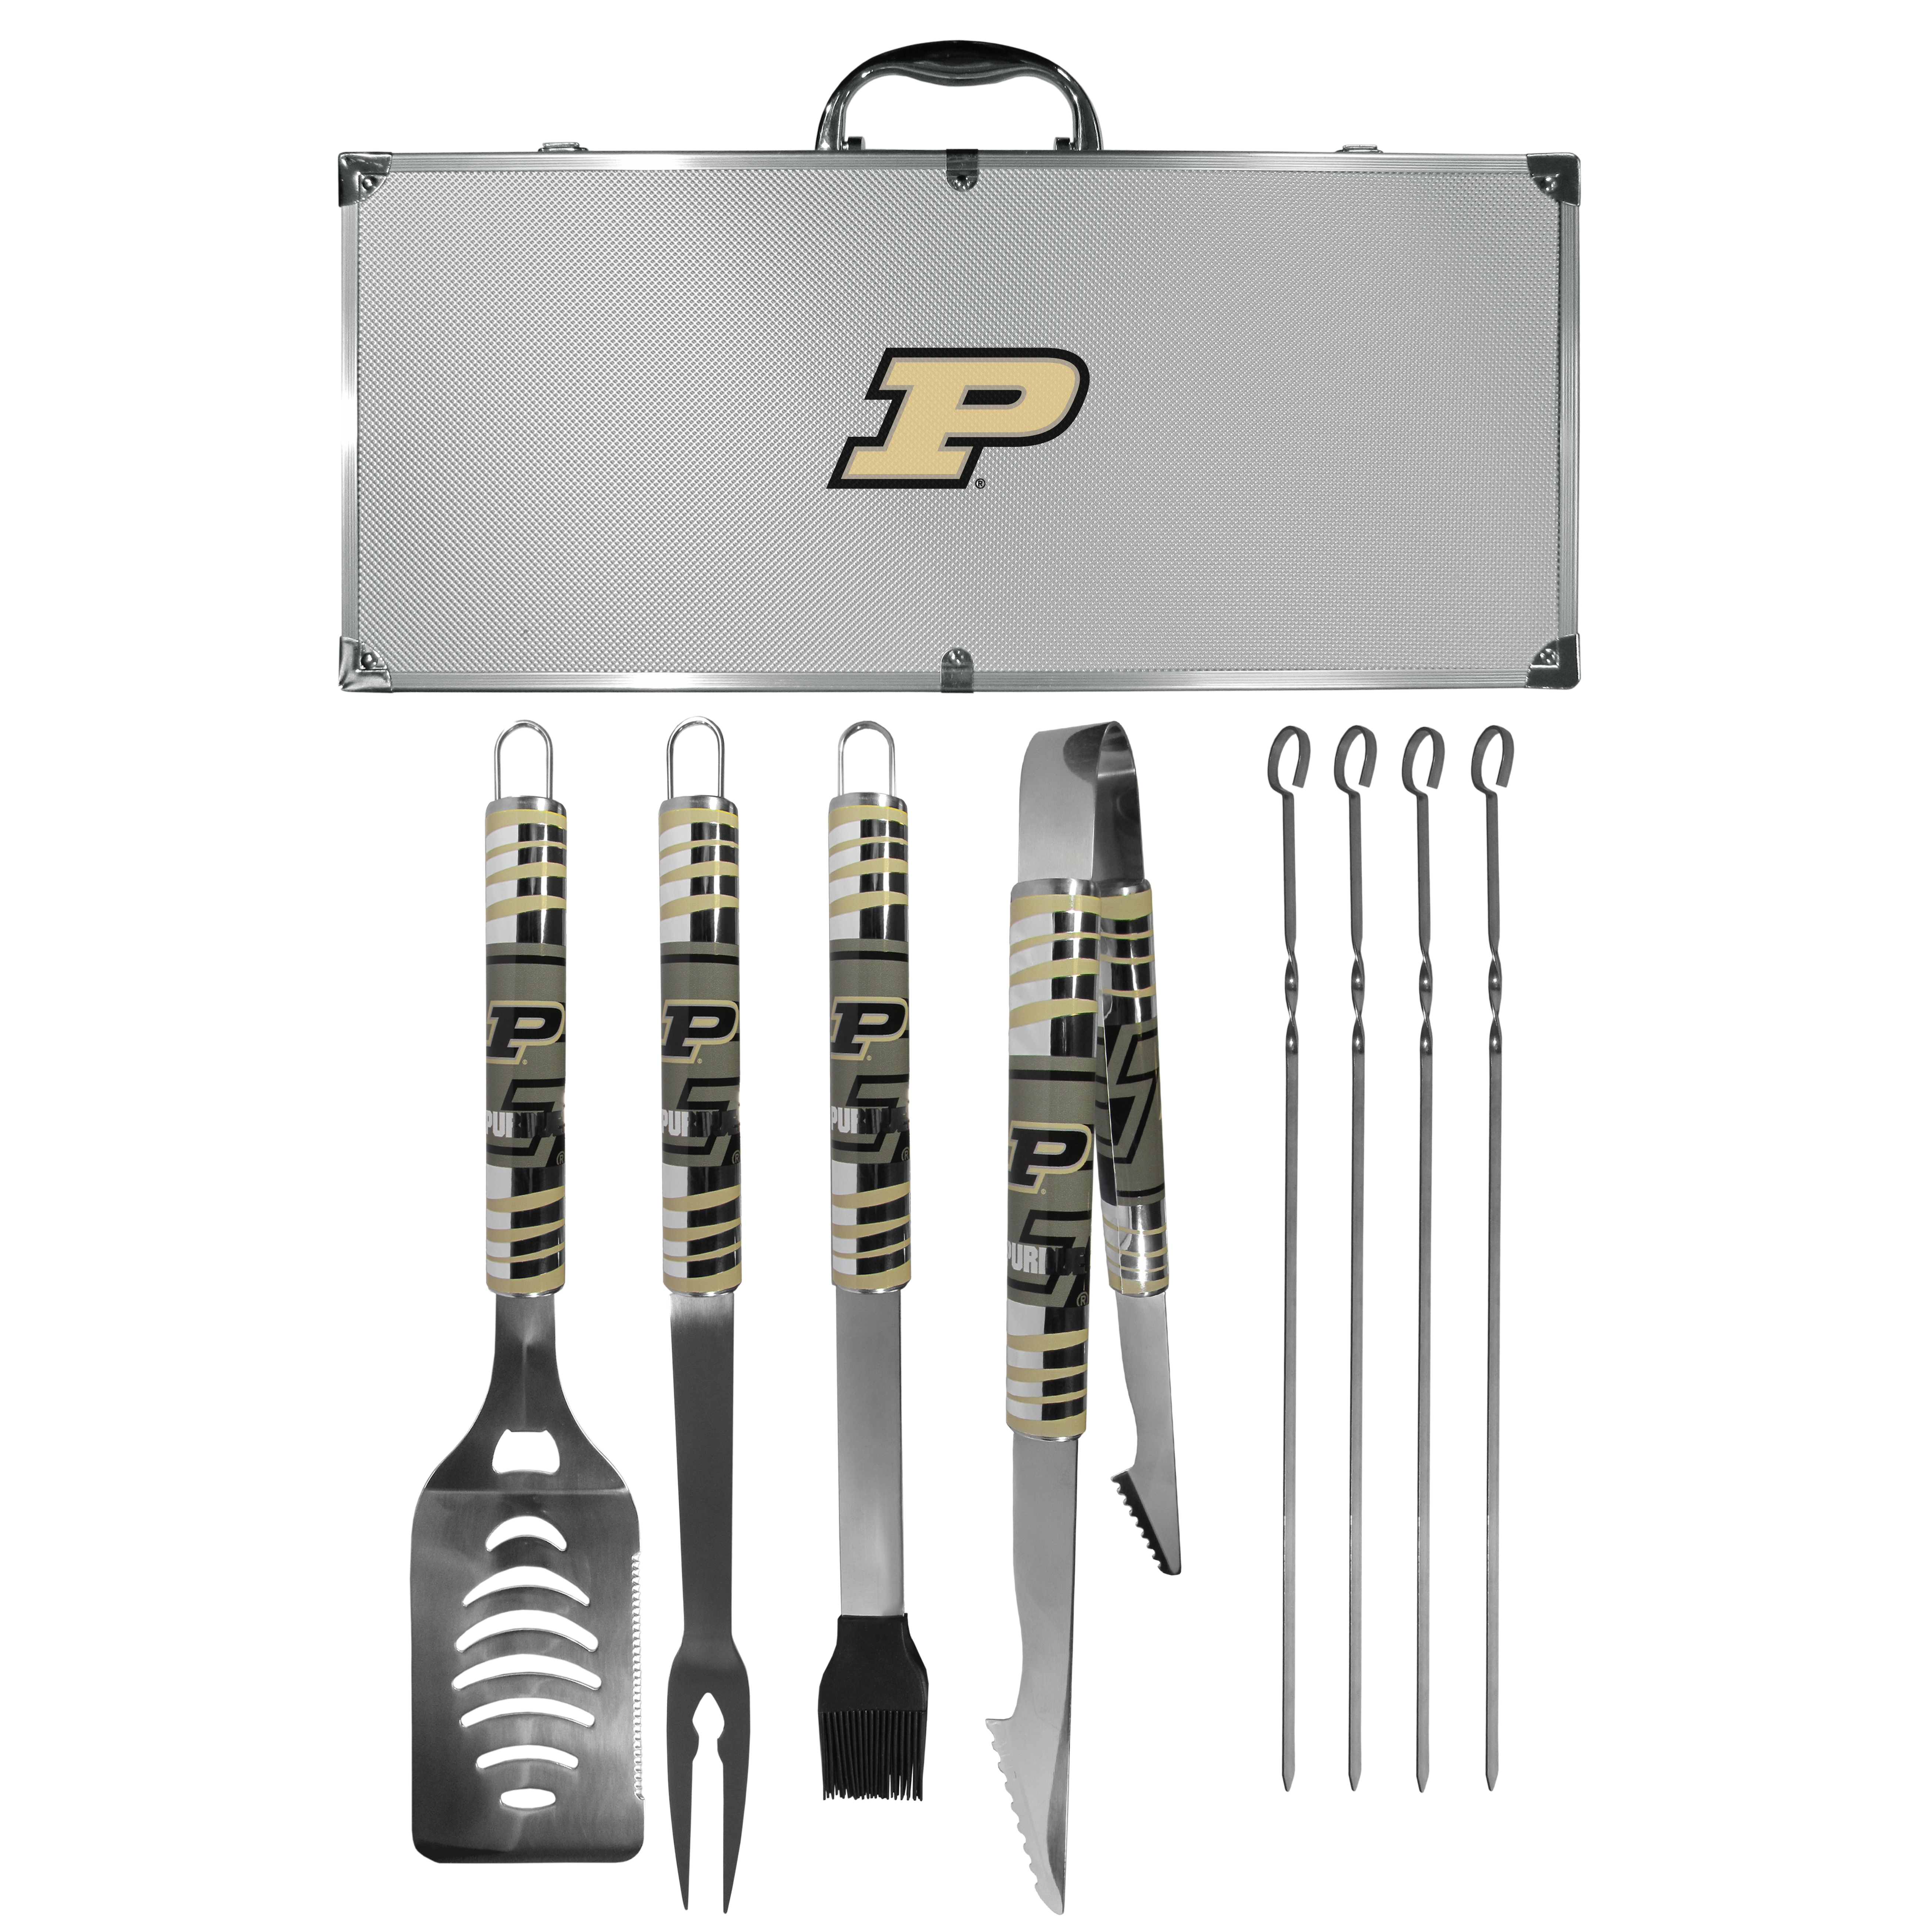 Purdue Boilermakers 8 pc Tailgater BBQ Set - This is the ultimate Purdue Boilermakers tailgate accessory! The high quality, 420 grade stainless steel tools are durable and well-made enough to make even the pickiest grill master smile. This complete grill accessory kit includes; 4 skewers, spatula with bottle opener and serrated knife edge, basting brush, tongs and a fork. The 18 inch metal carrying case is perfect for great outdoor use making grilling an ease while camping, tailgating or while having a game day party on your patio. The tools are 17 inches long and feature vivid team graphics. The metal case features a large team emblem with exceptional detail. This high-end men's gift is sure to be a hit as a present on Father's Day or Christmas.